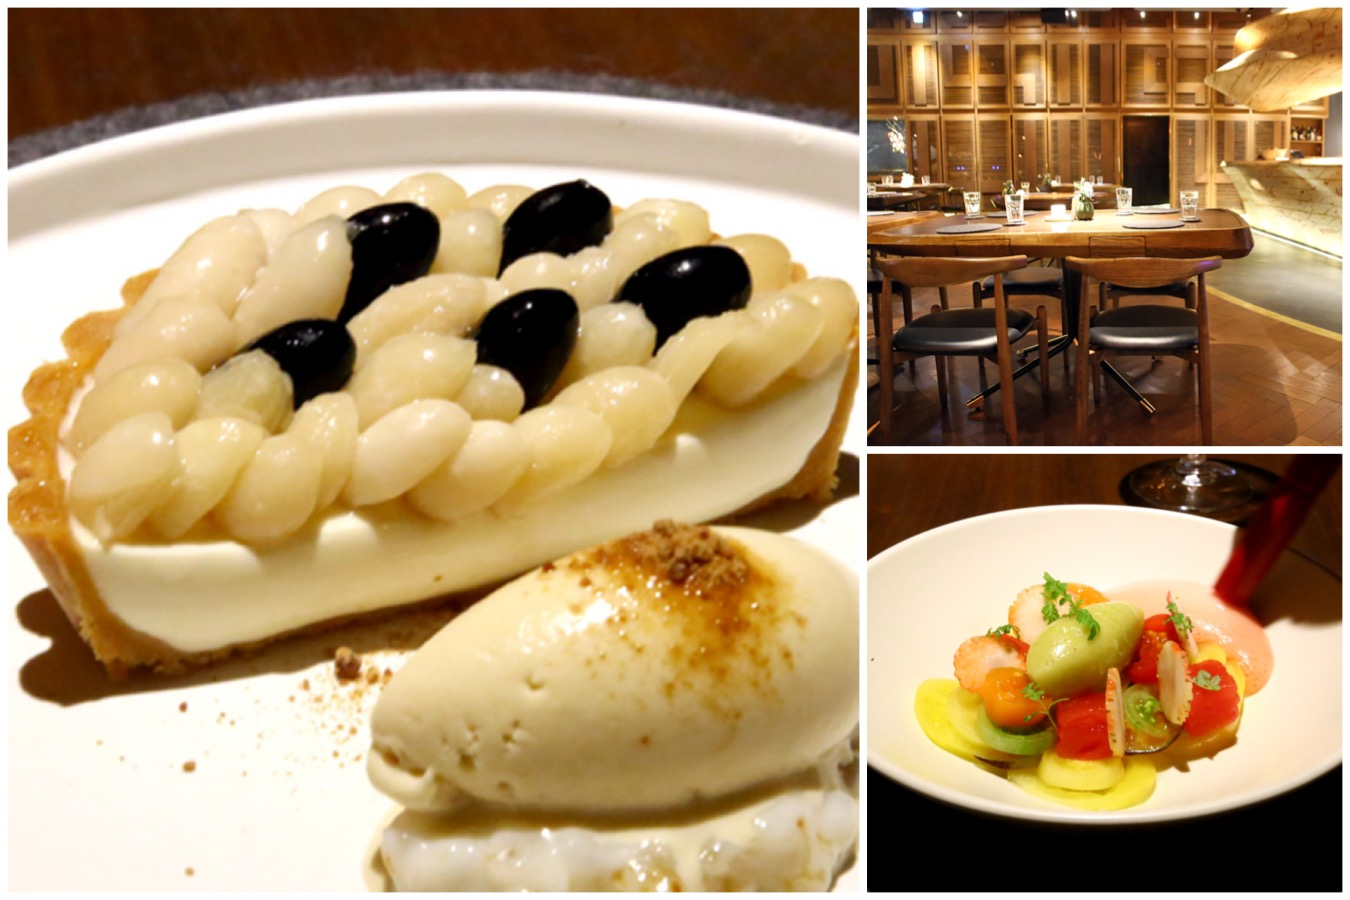 RAW – Best Restaurant In Taipei. By Chef André Chiang & Team, Super Difficult To Get A Reservation